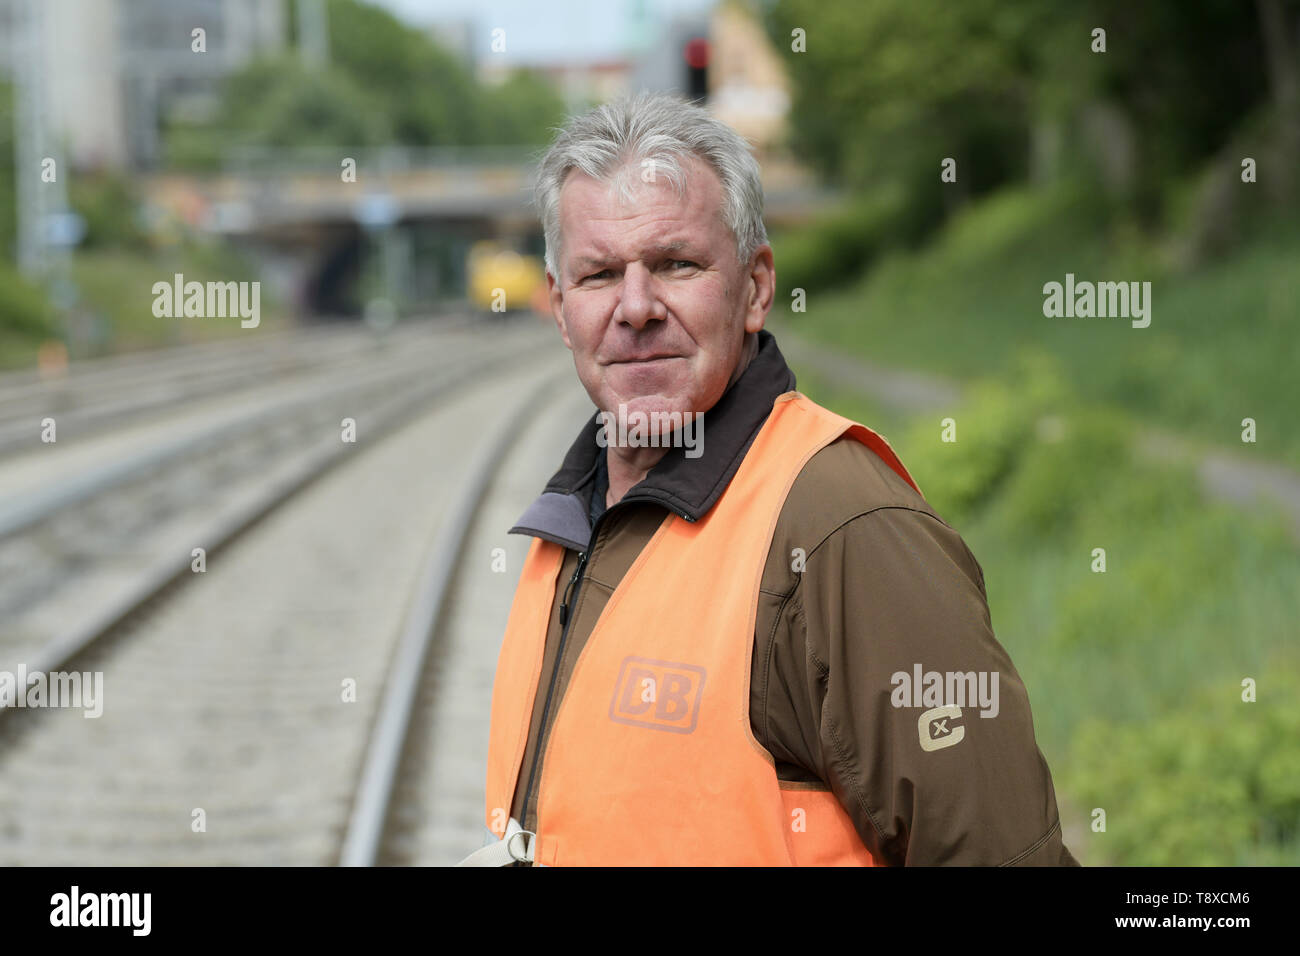 Berlin, Germany. 15th May, 2019. Ulrich Burkhardt, project manager of Deutsche Bahn, is standing during construction work on the eastern Berlin S-Bahn ring between Greifswalder Straße and Prenzlauer Allee. Since 8 April 2019, travellers have had to live with considerable restrictions. The work is due to be completed on 20 May. Credit: Jörg Carstensen/dpa/Alamy Live News - Stock Image